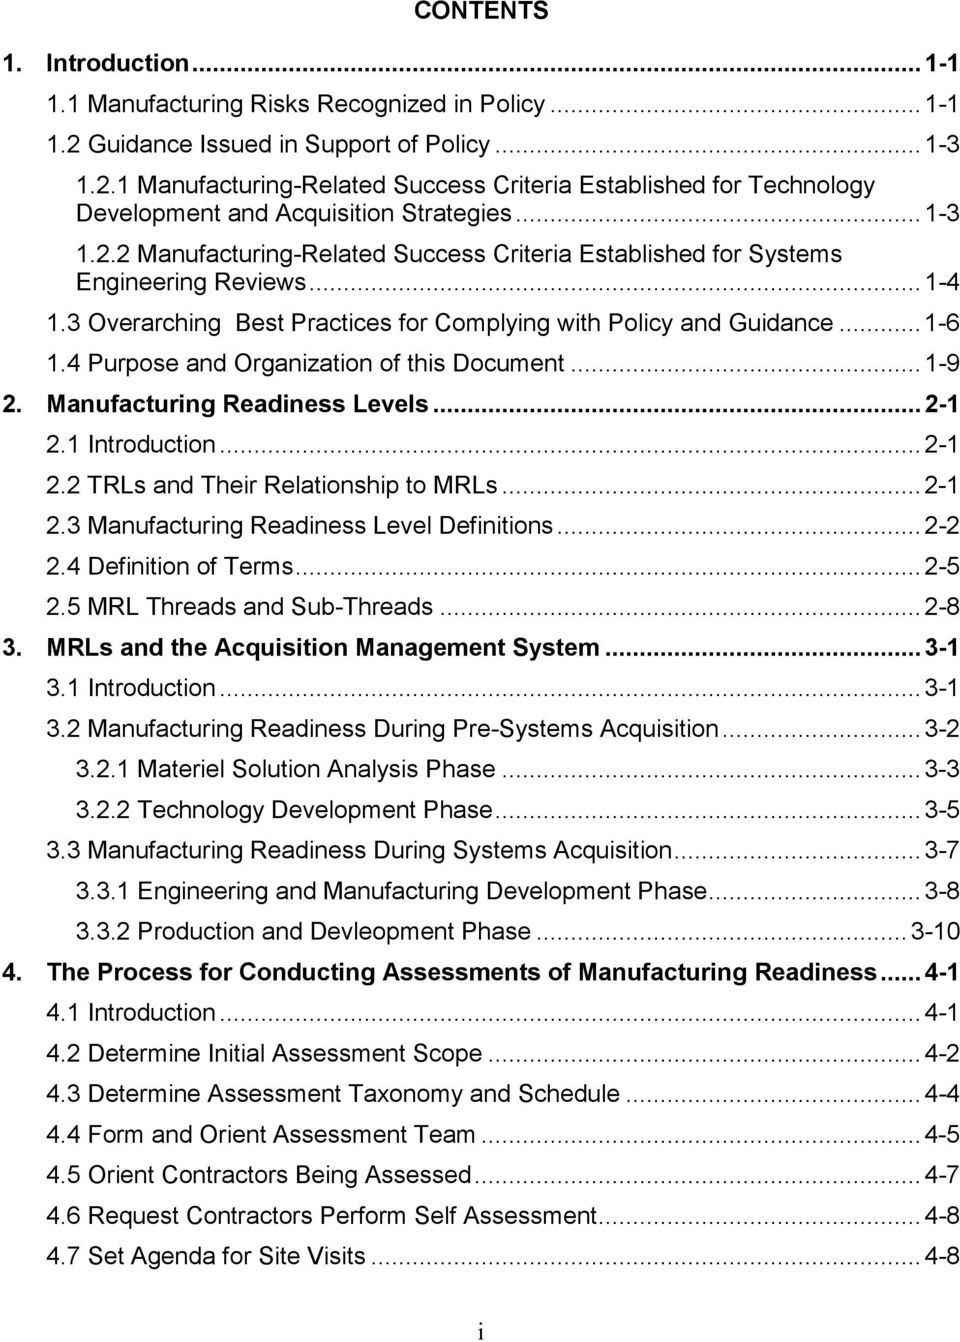 4 Purpose and Organization of this Document... 1-9 2. Manufacturing Readiness Levels... 2-1 2.1 Introduction... 2-1 2.2 TRLs and Their Relationship to MRLs... 2-1 2.3 Manufacturing Readiness Level Definitions.